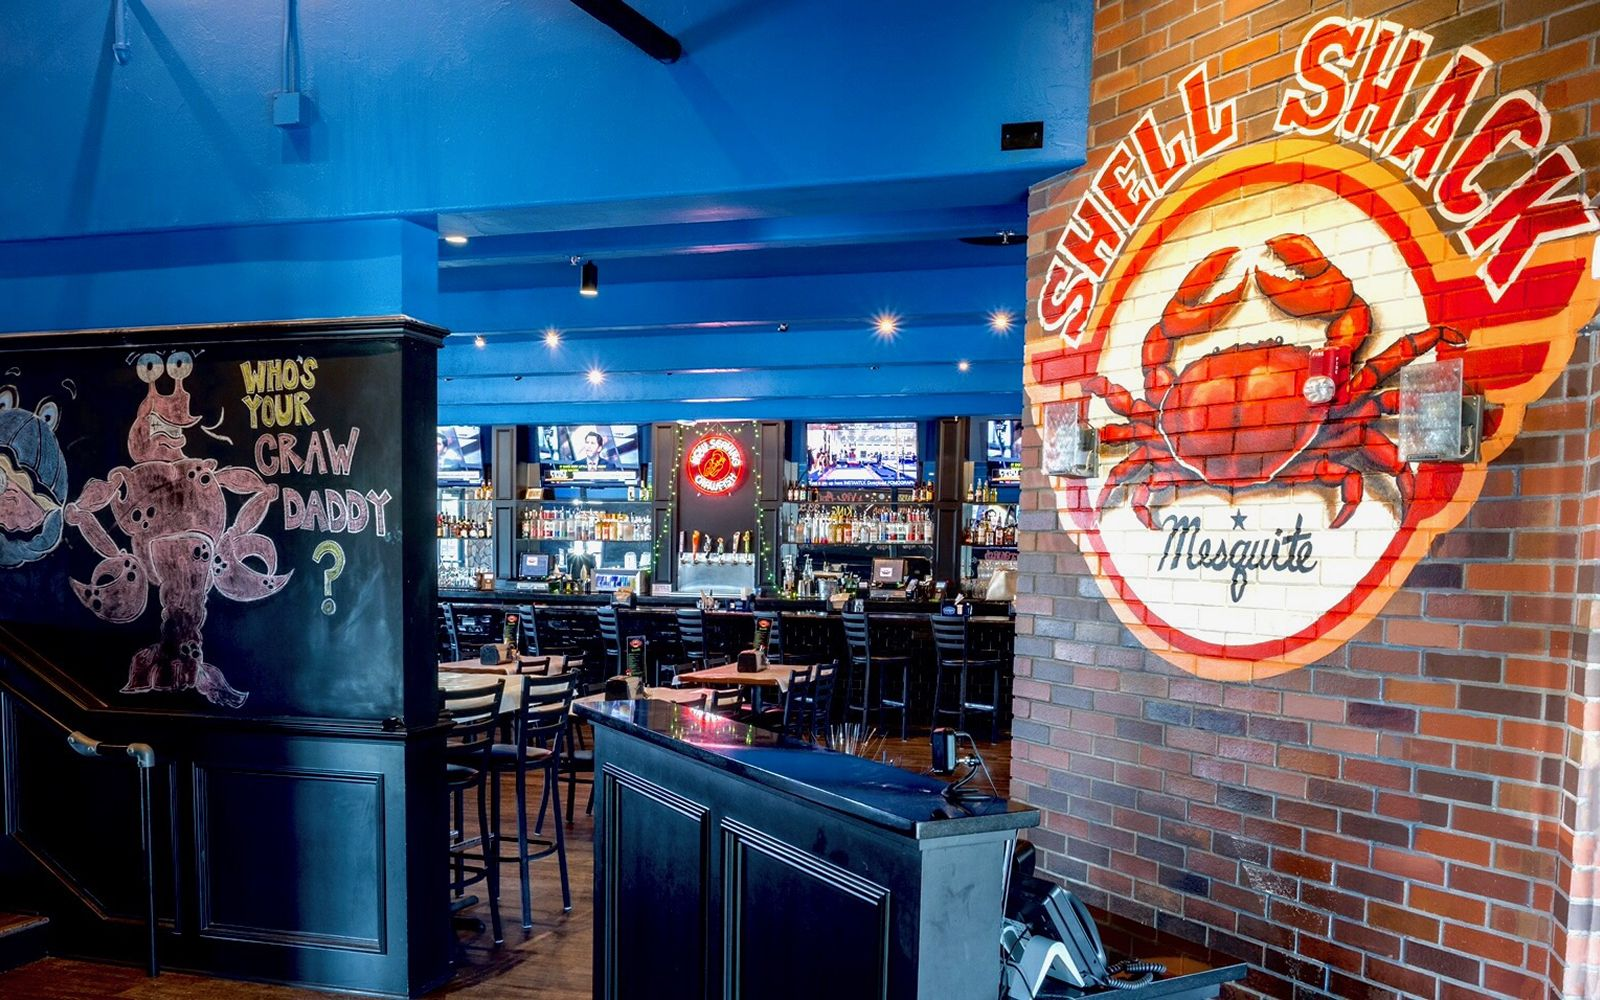 Shell Shack - Signs 8 Unit Franchise Agreement in one of the Top 10 Restaurant Markets